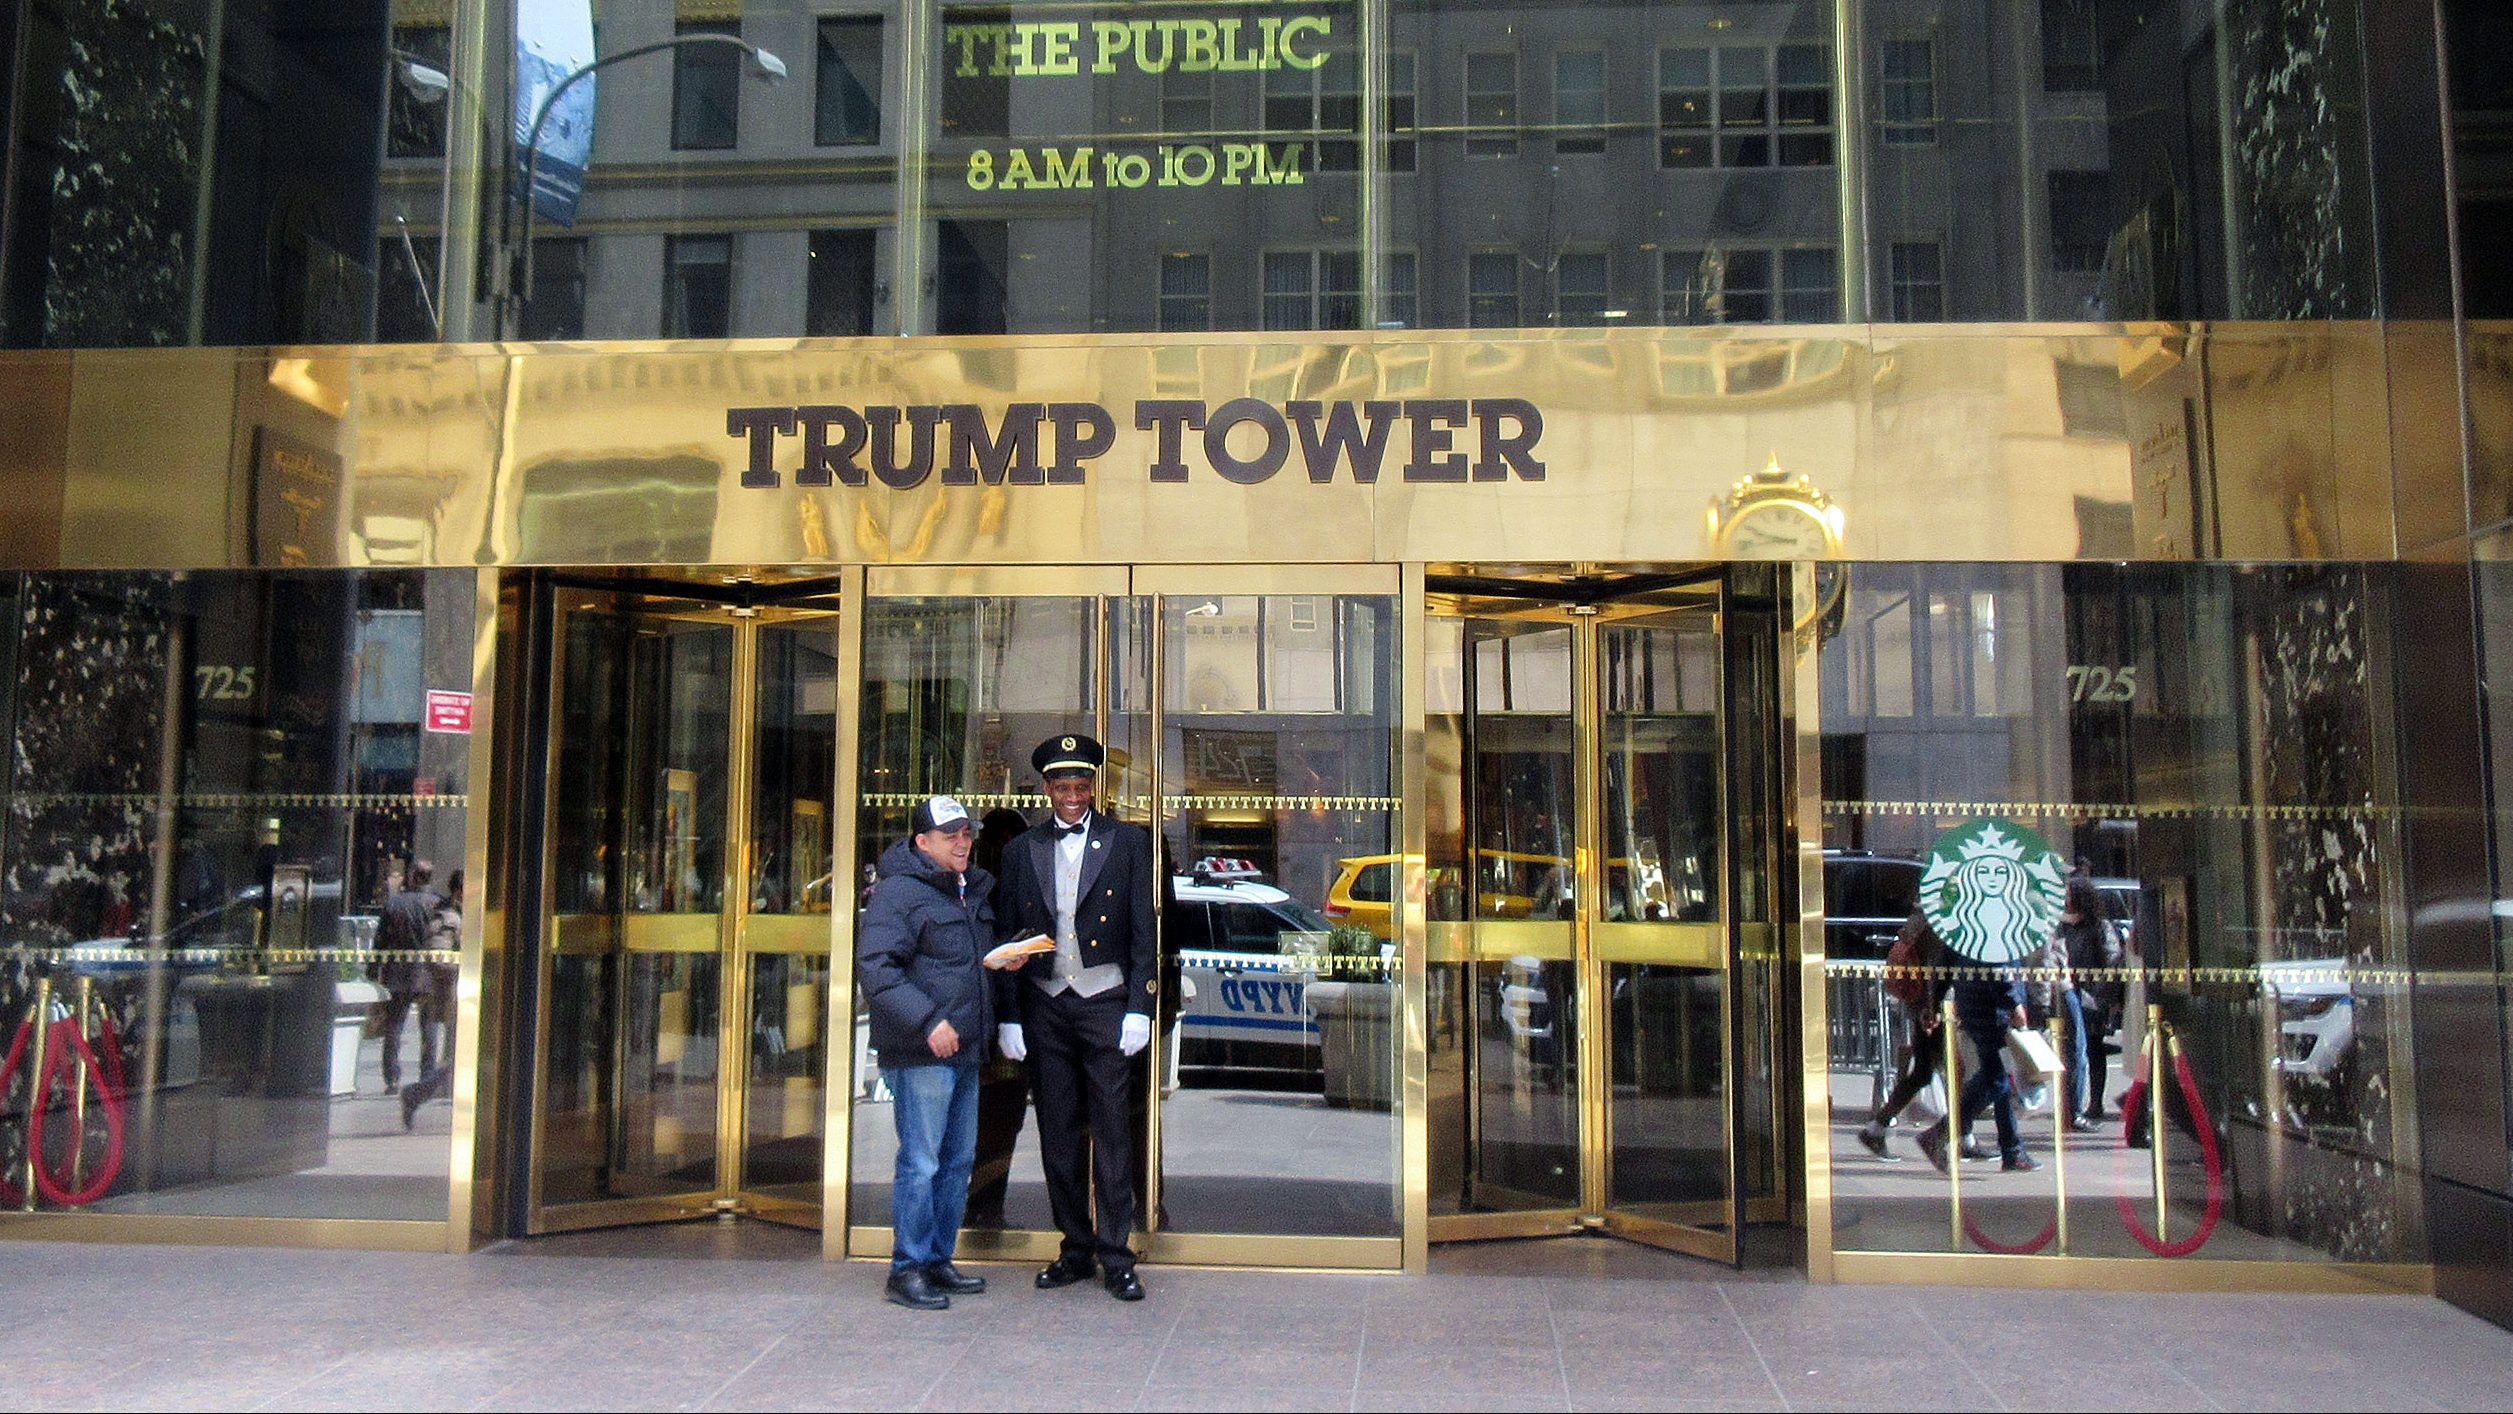 This April 8, 2016 file photo shows the entrance to Trump Tower in New York. The billionaire developer and Republican presidential candidate lives and works in the tower.